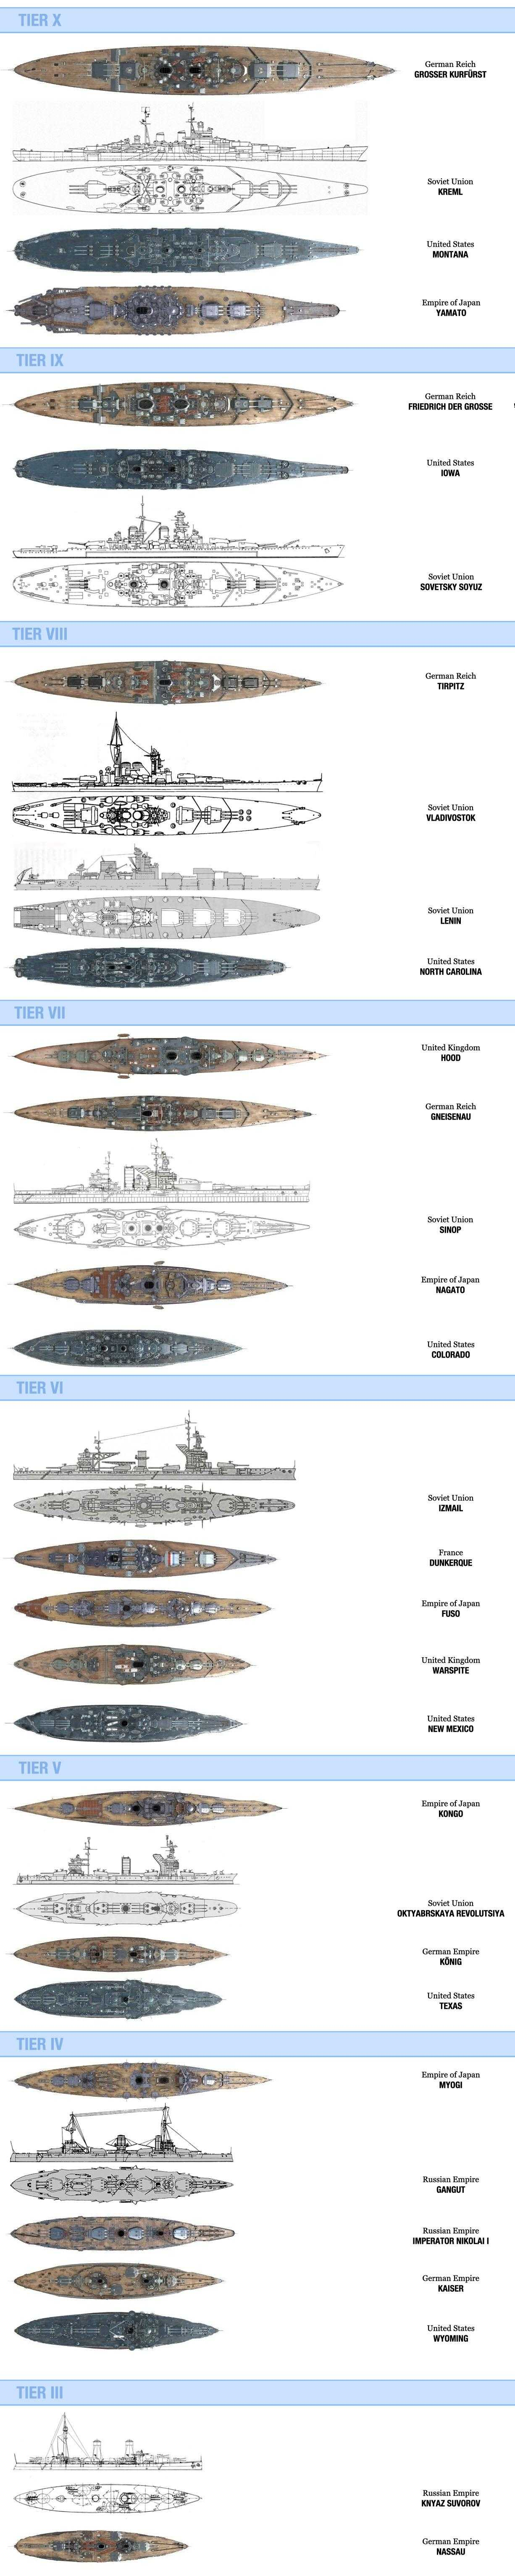 World of Warships - Russian and Soviet battleships - size